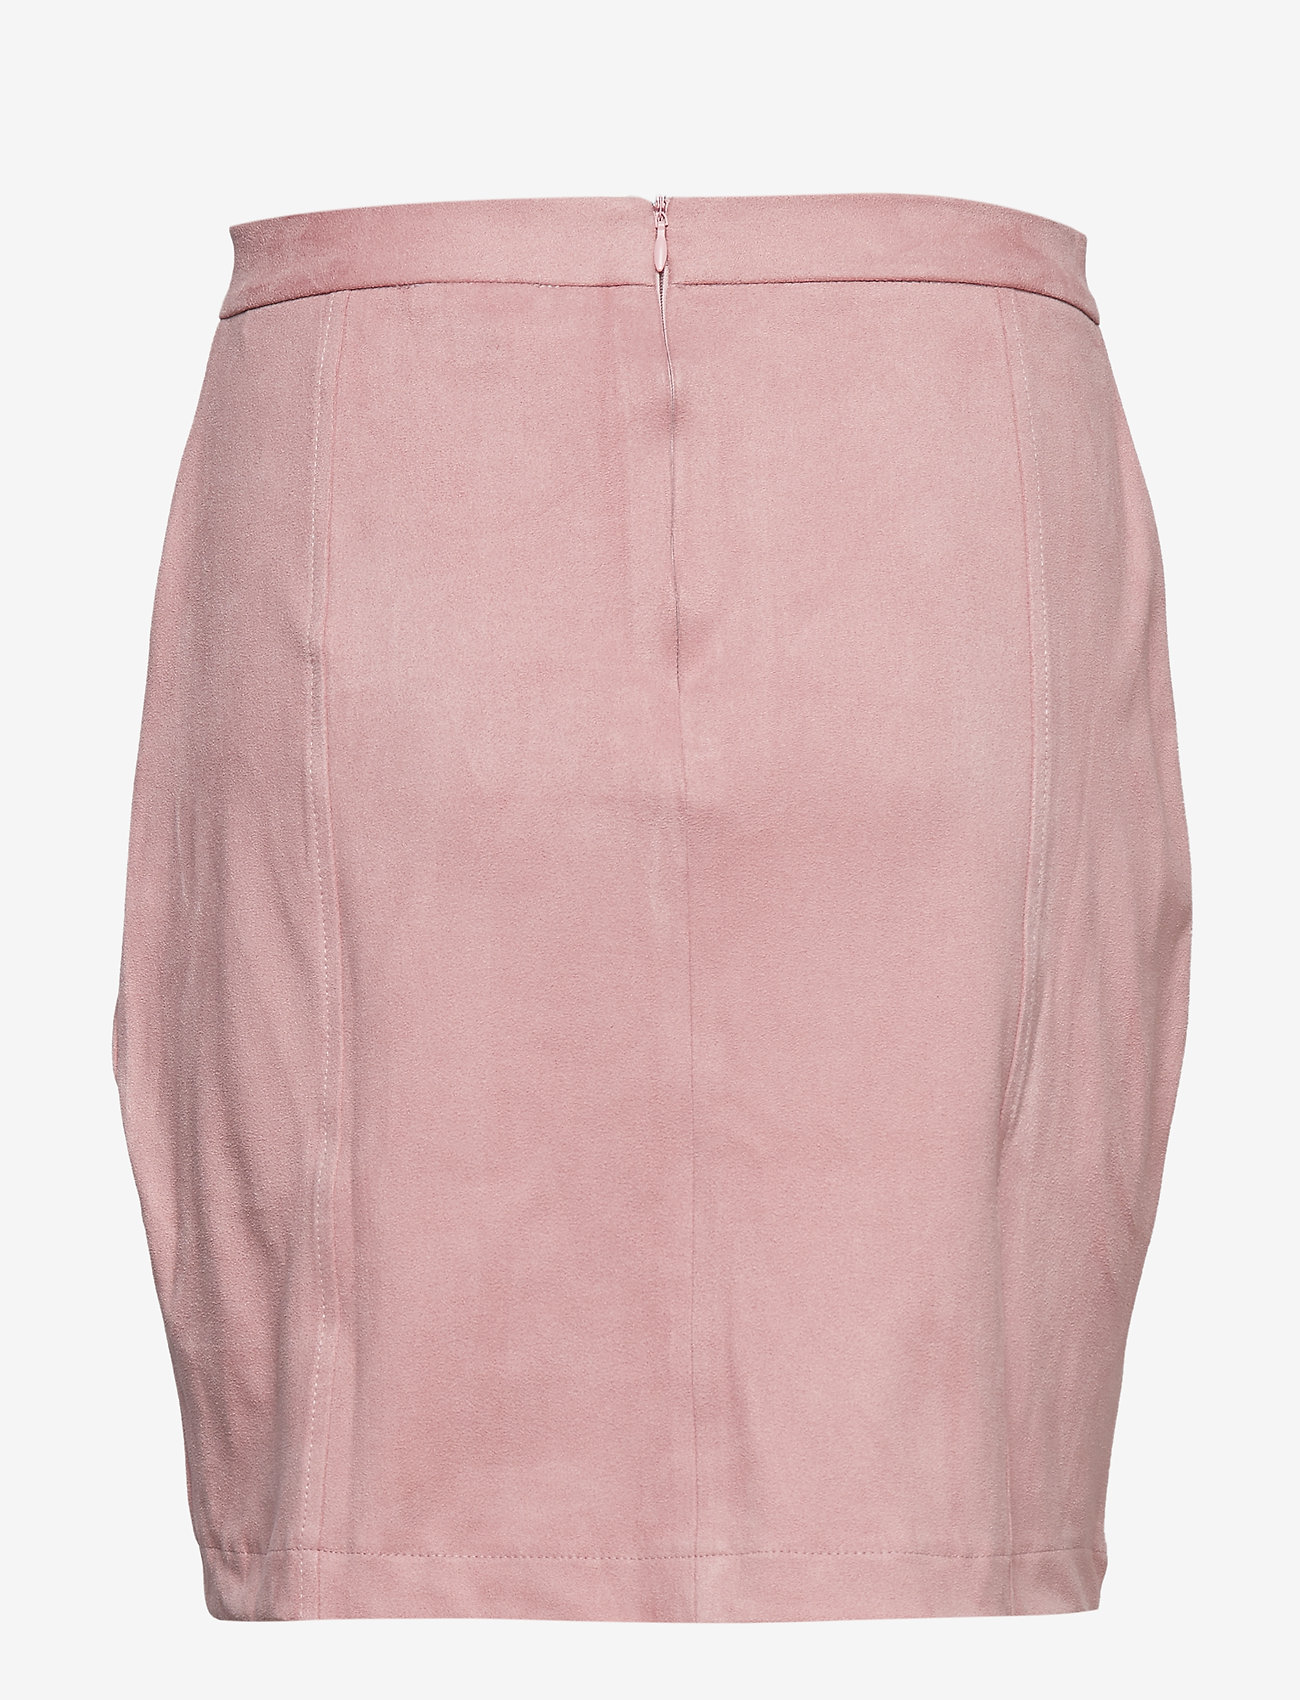 Esprit Casual - Skirts knitted - midi skirts - old pink - 1